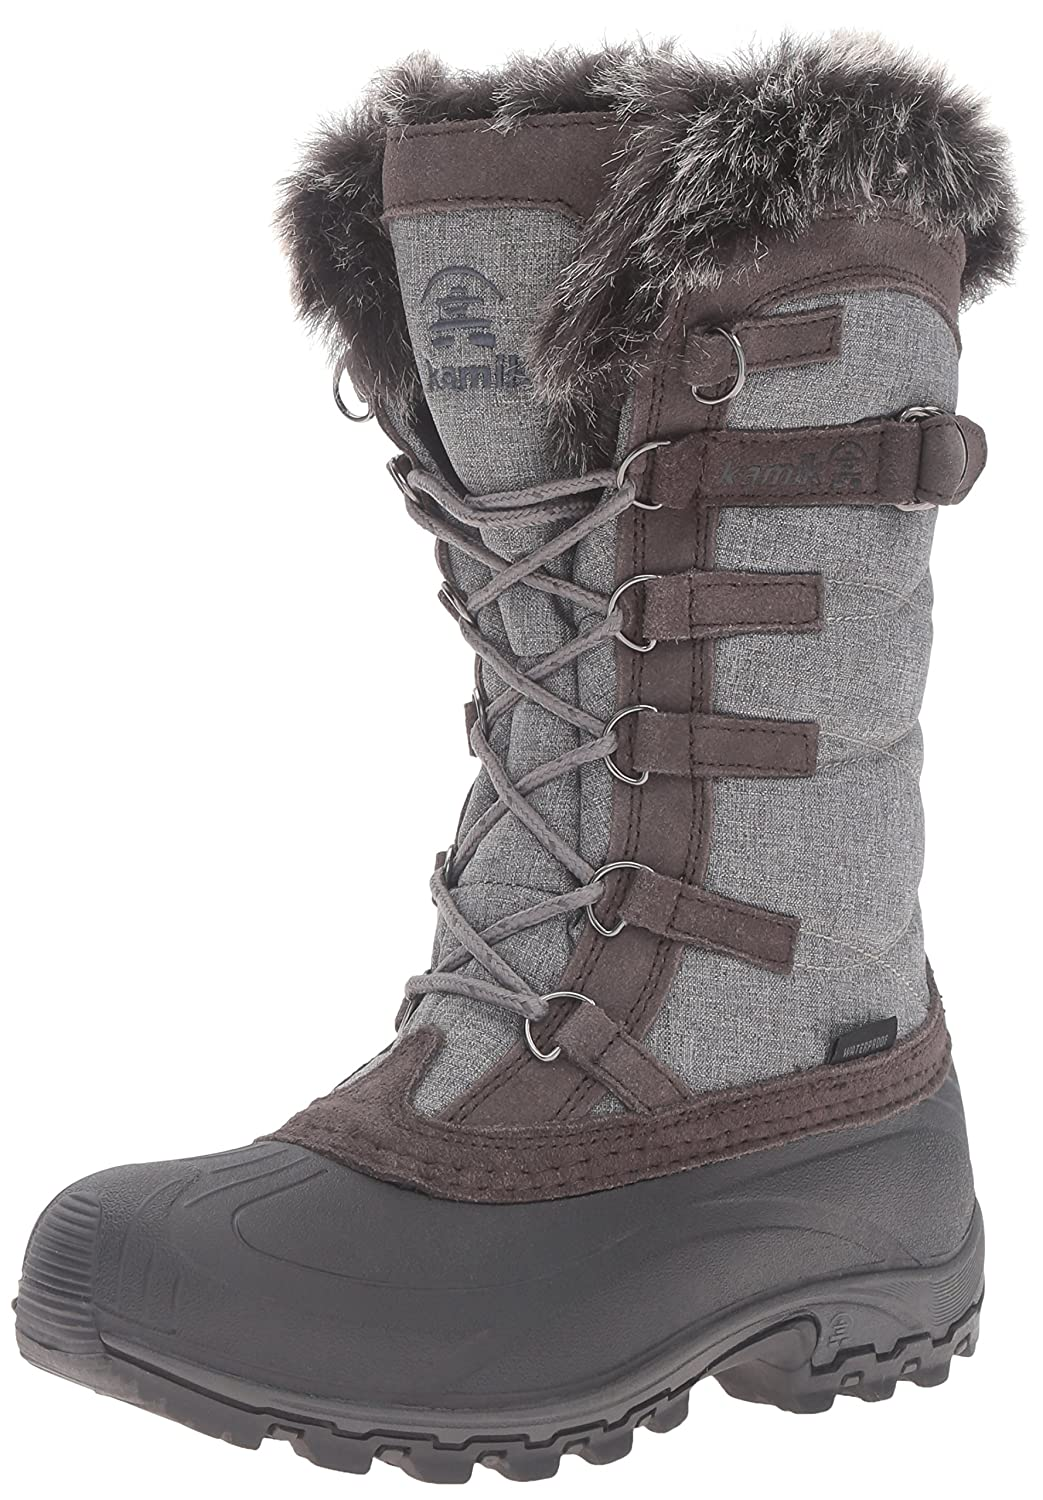 Kamik Women's Snowvalley Boot B0198WOKRE 10 B(M) US|Charcoal/Brown